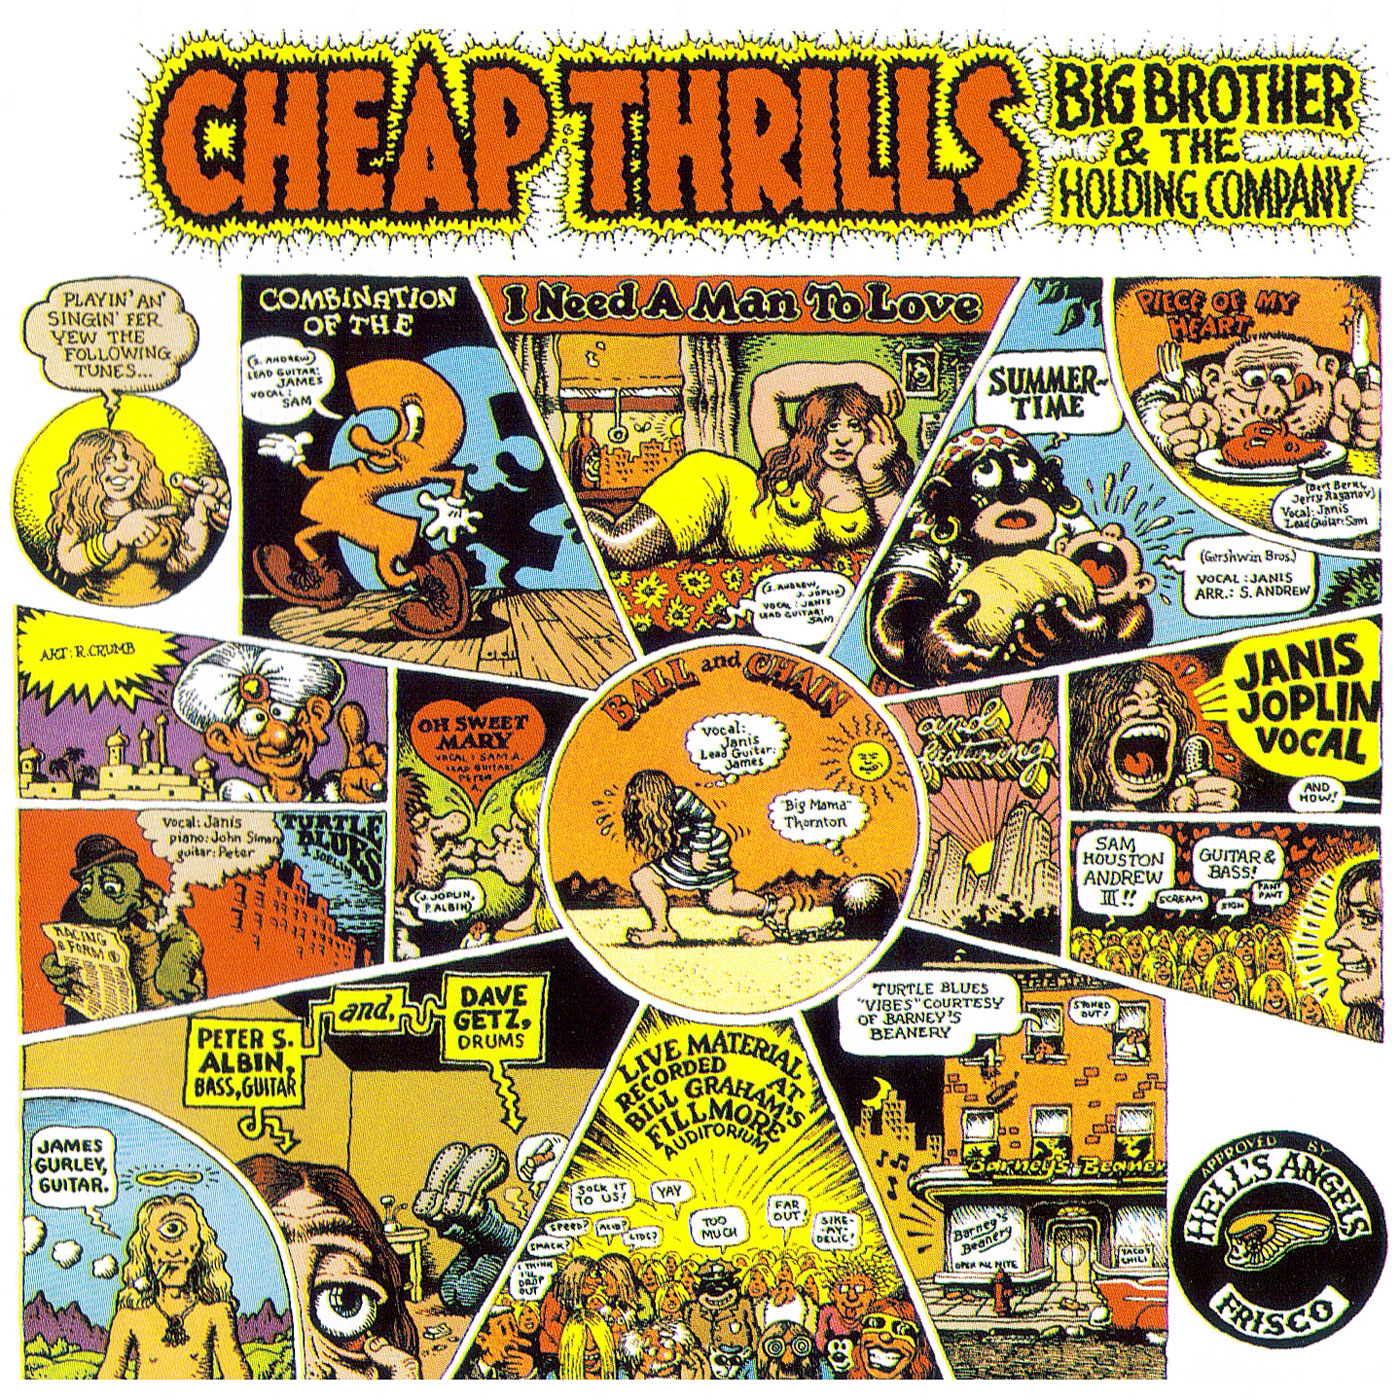 123 ROCK | Janis Joplin - Big Brother and the Holding Company - Cheap Thrills - Piece Of My Heart - 1968 | Big Brother and the Holding Company - 1966-1968 - Janis Joplin, Peter Albin, Sam Andrew, David Getz, James Gurley | Informations, Pochette d'Album, Video